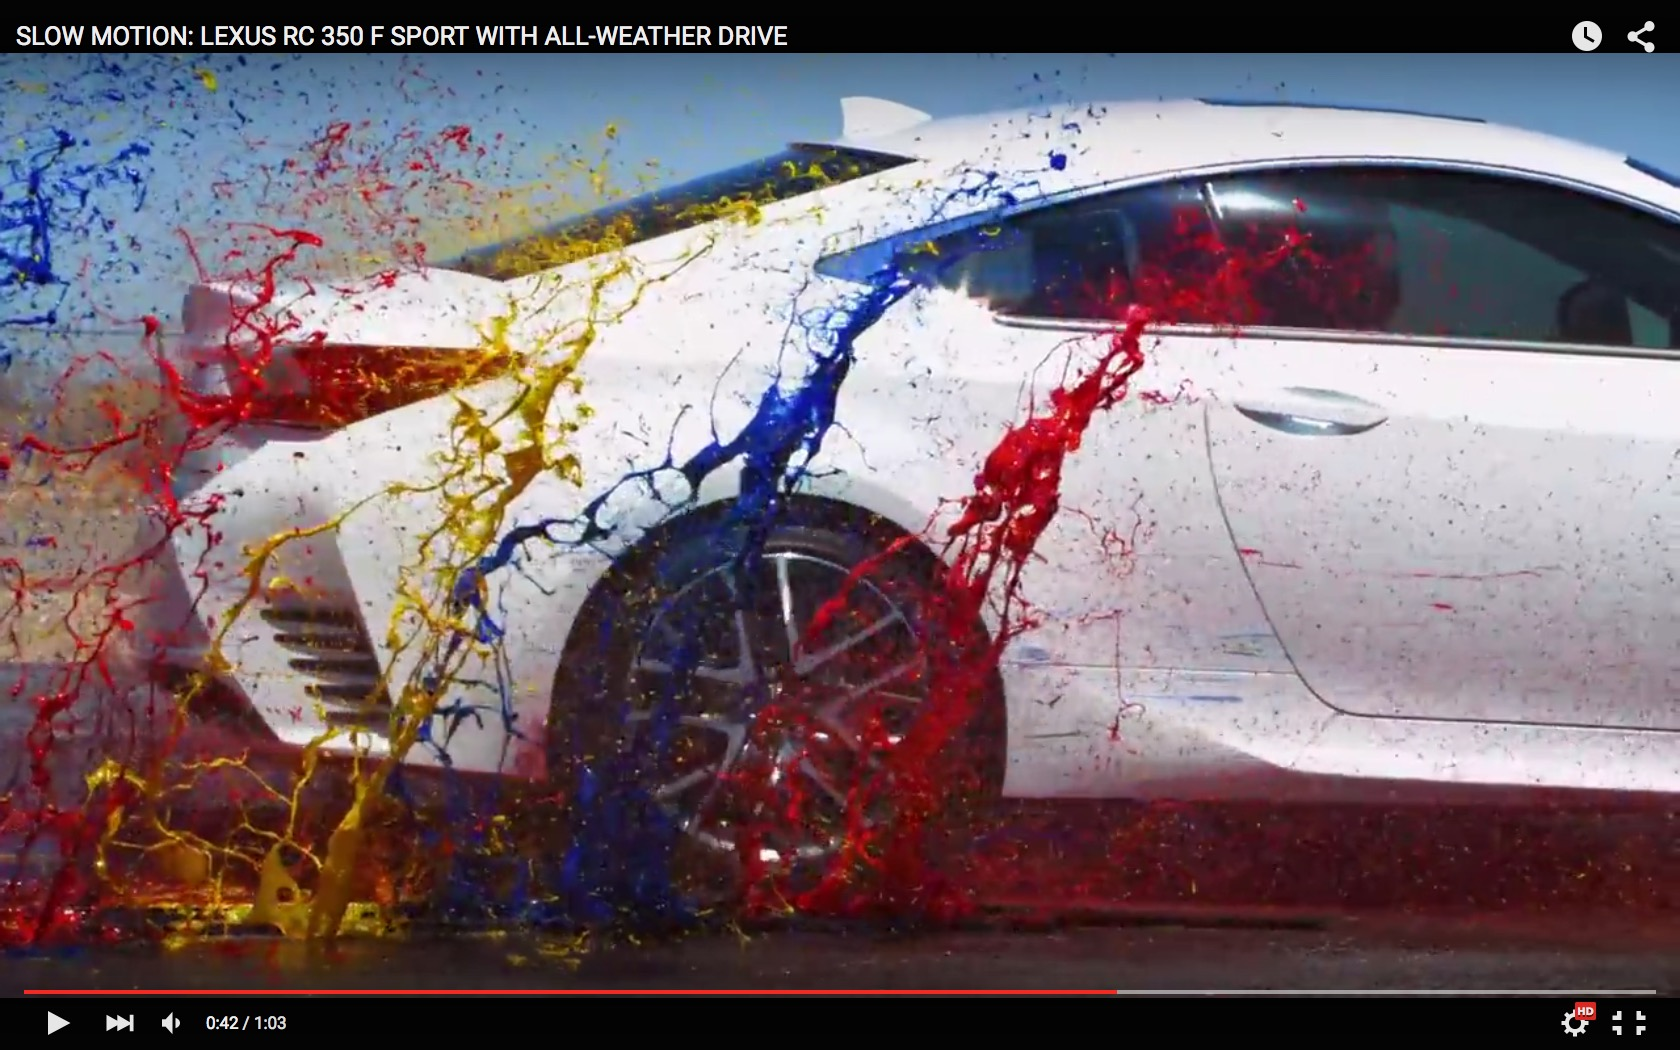 watch a lexus rc350 f sport create a rainbow of paint in slow motion autoevolution. Black Bedroom Furniture Sets. Home Design Ideas